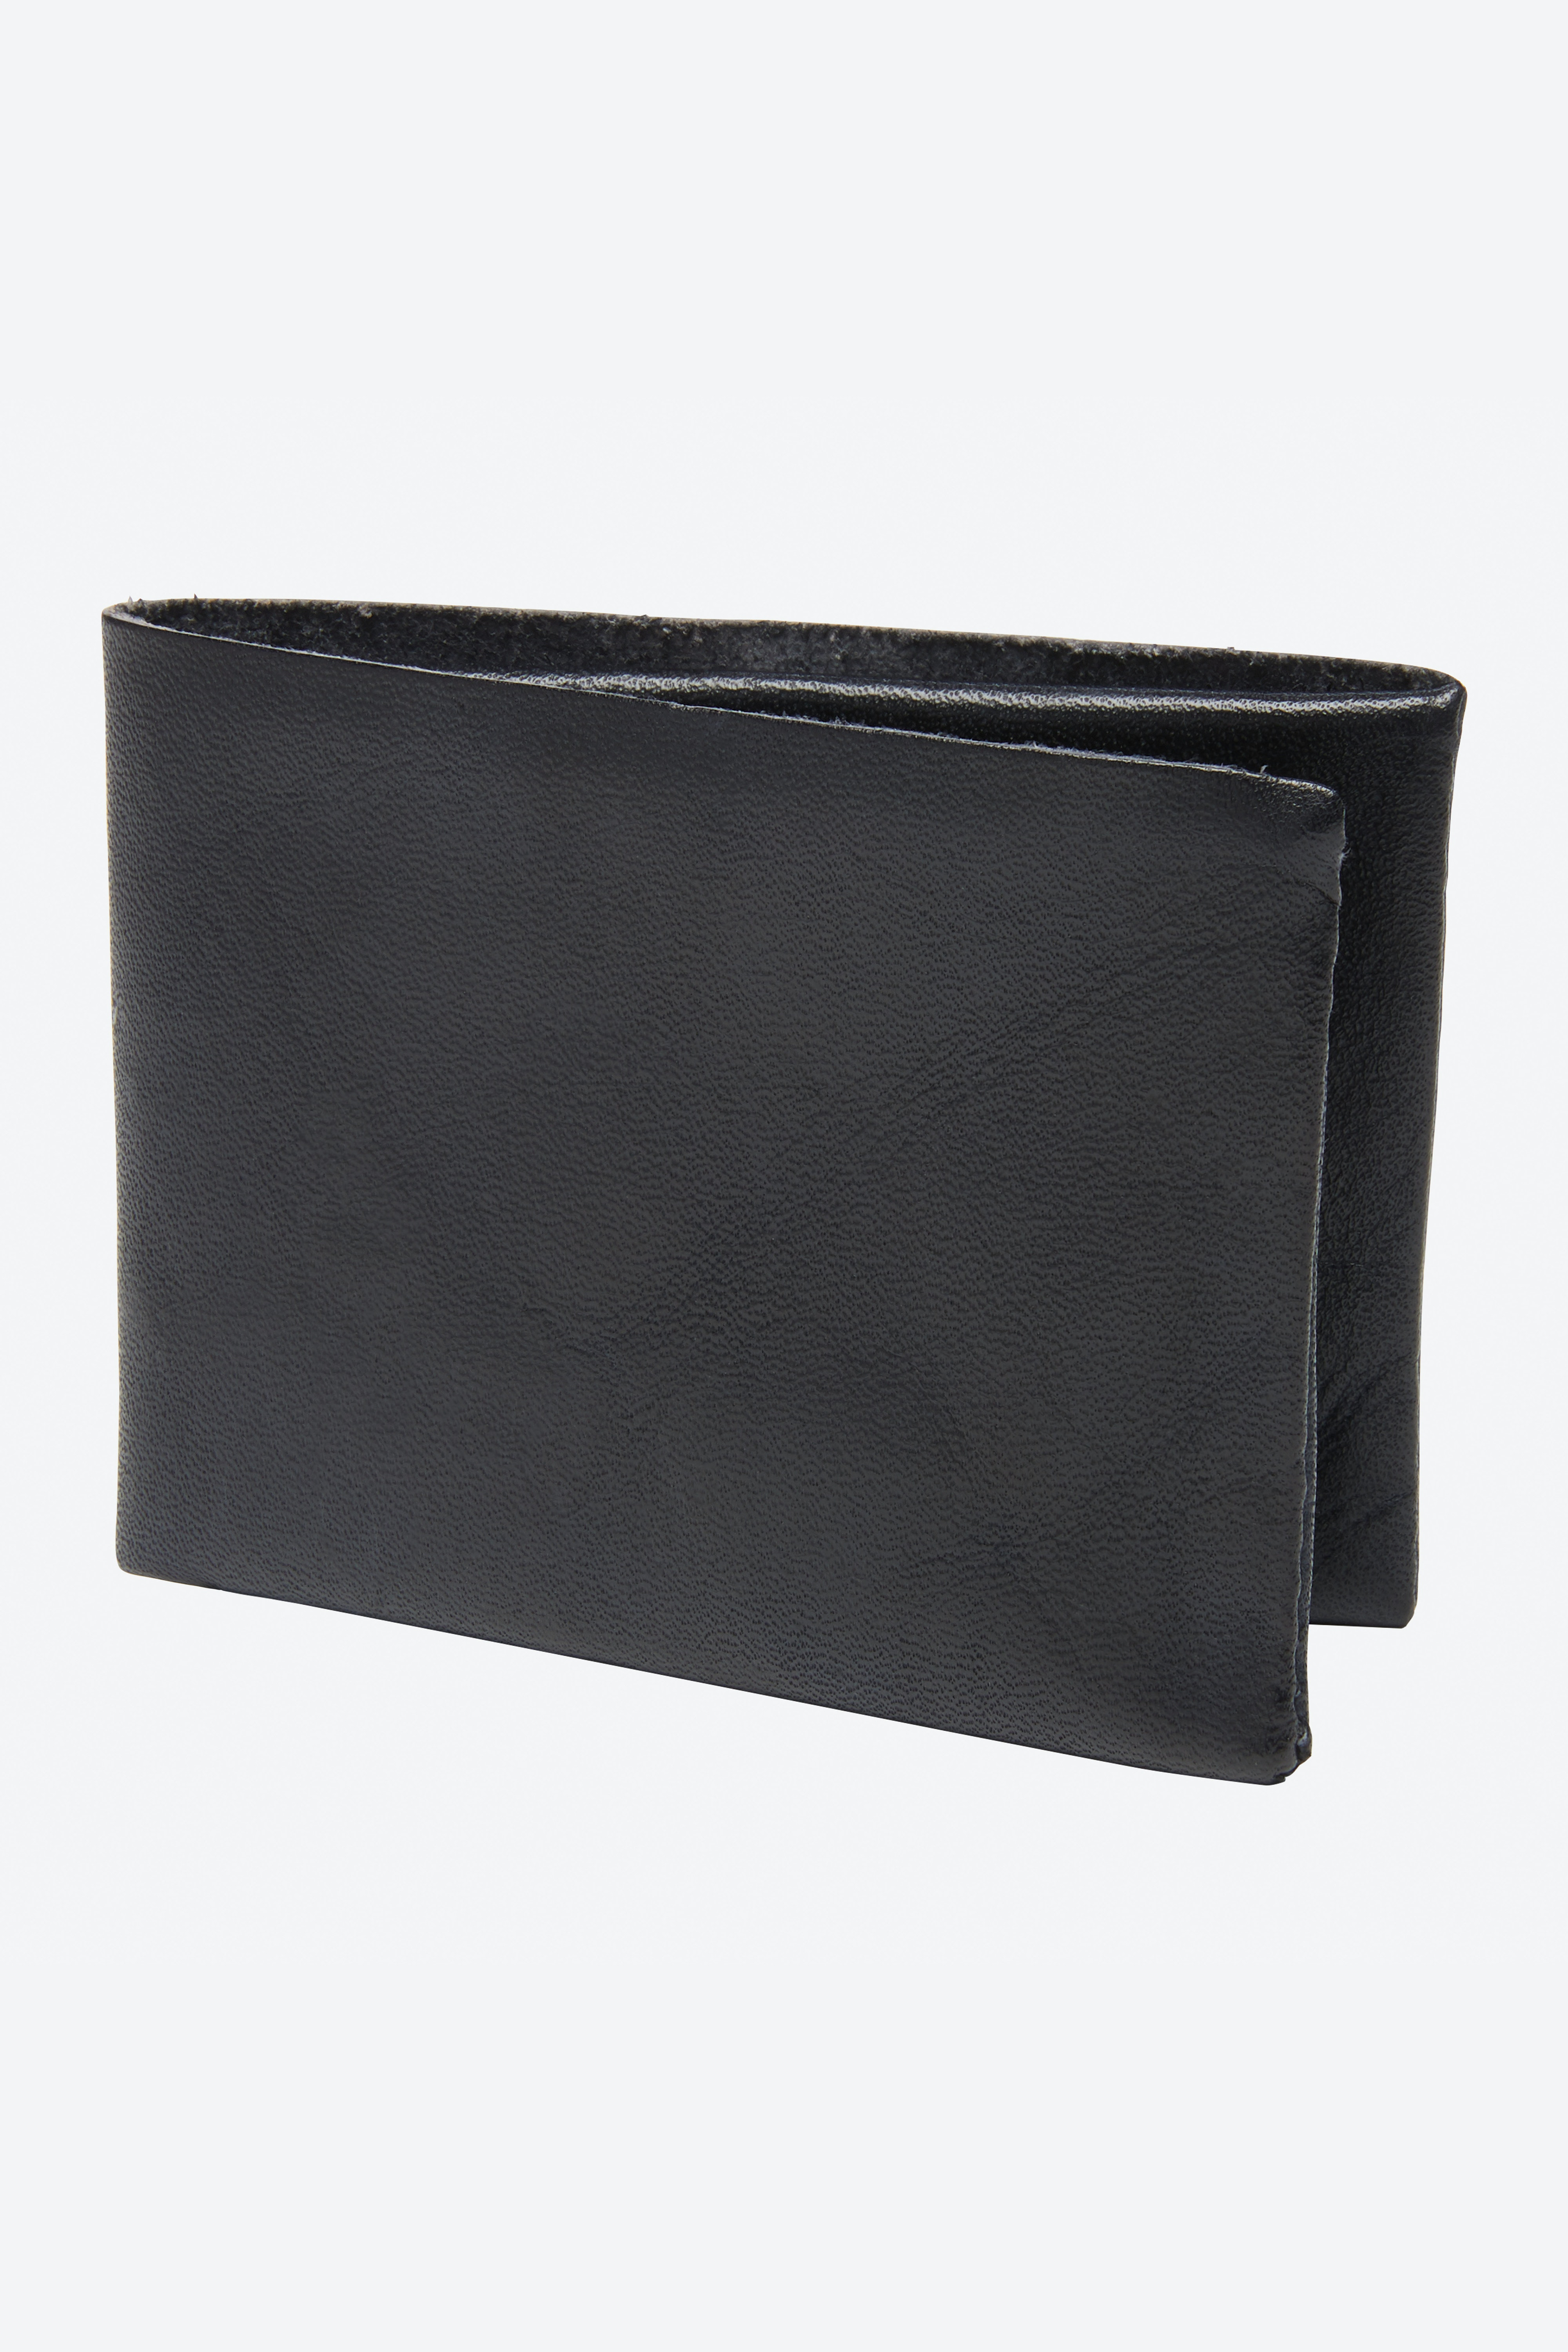 Maximum Henry X Bonobos Wallet